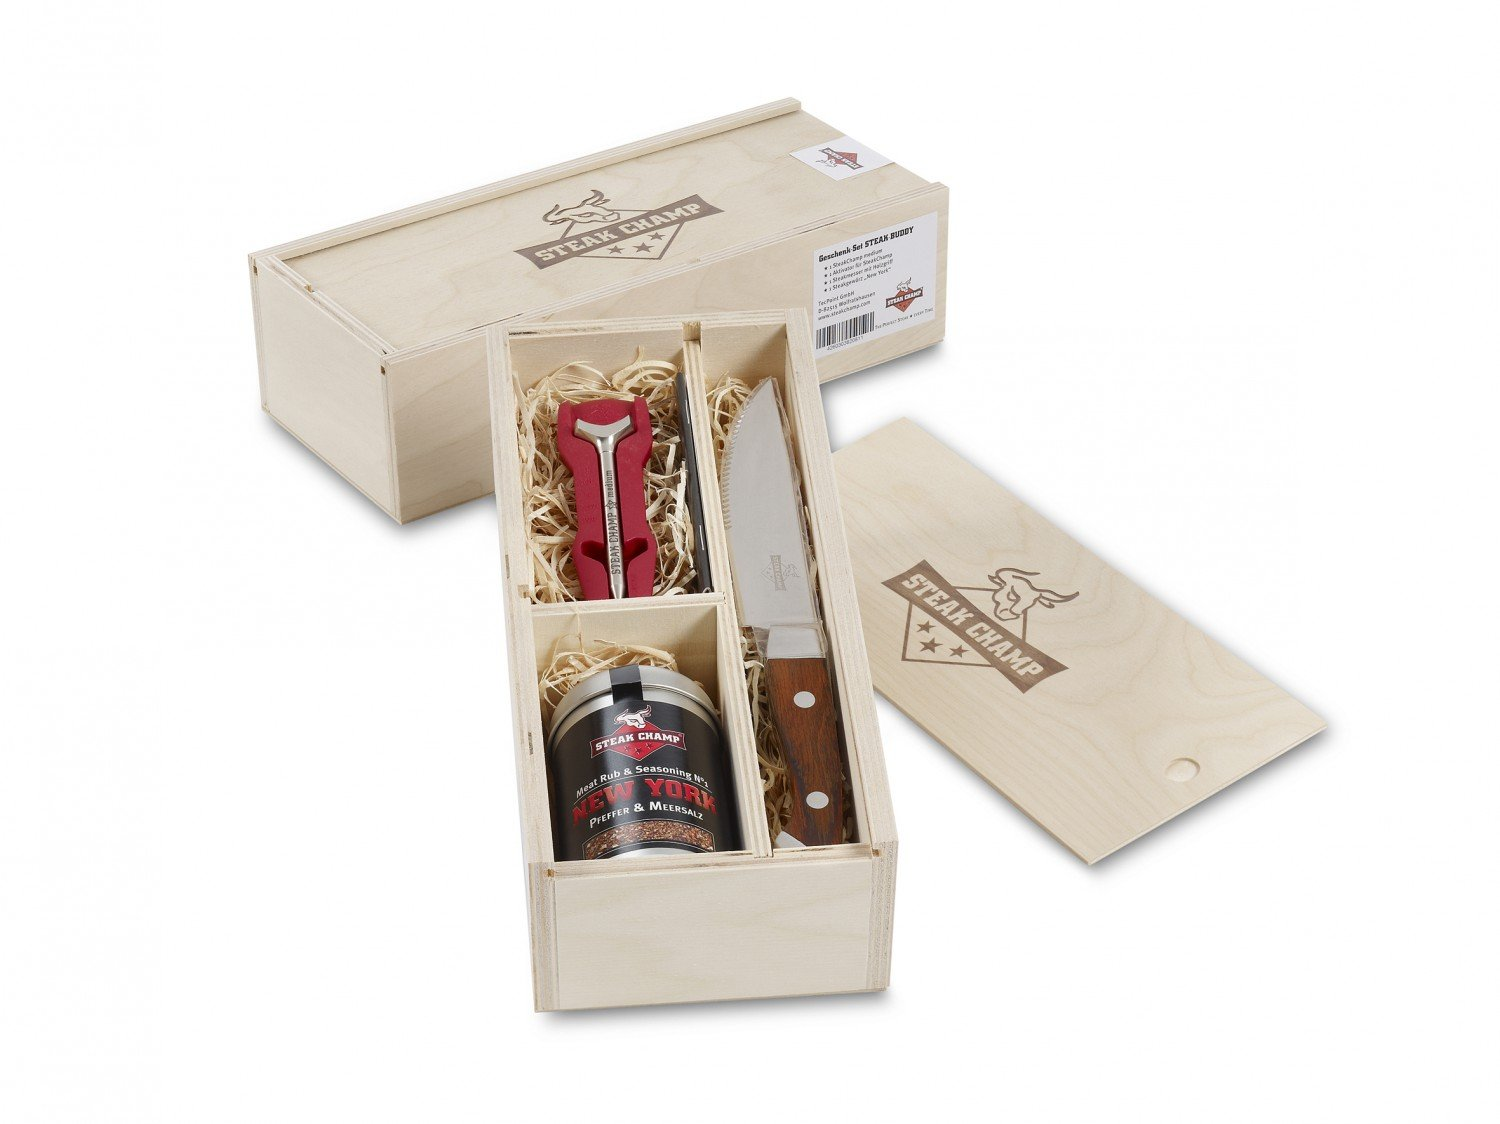 SteakChamp Geschenk-Set 1 – 'Steak Buddy' bestellen